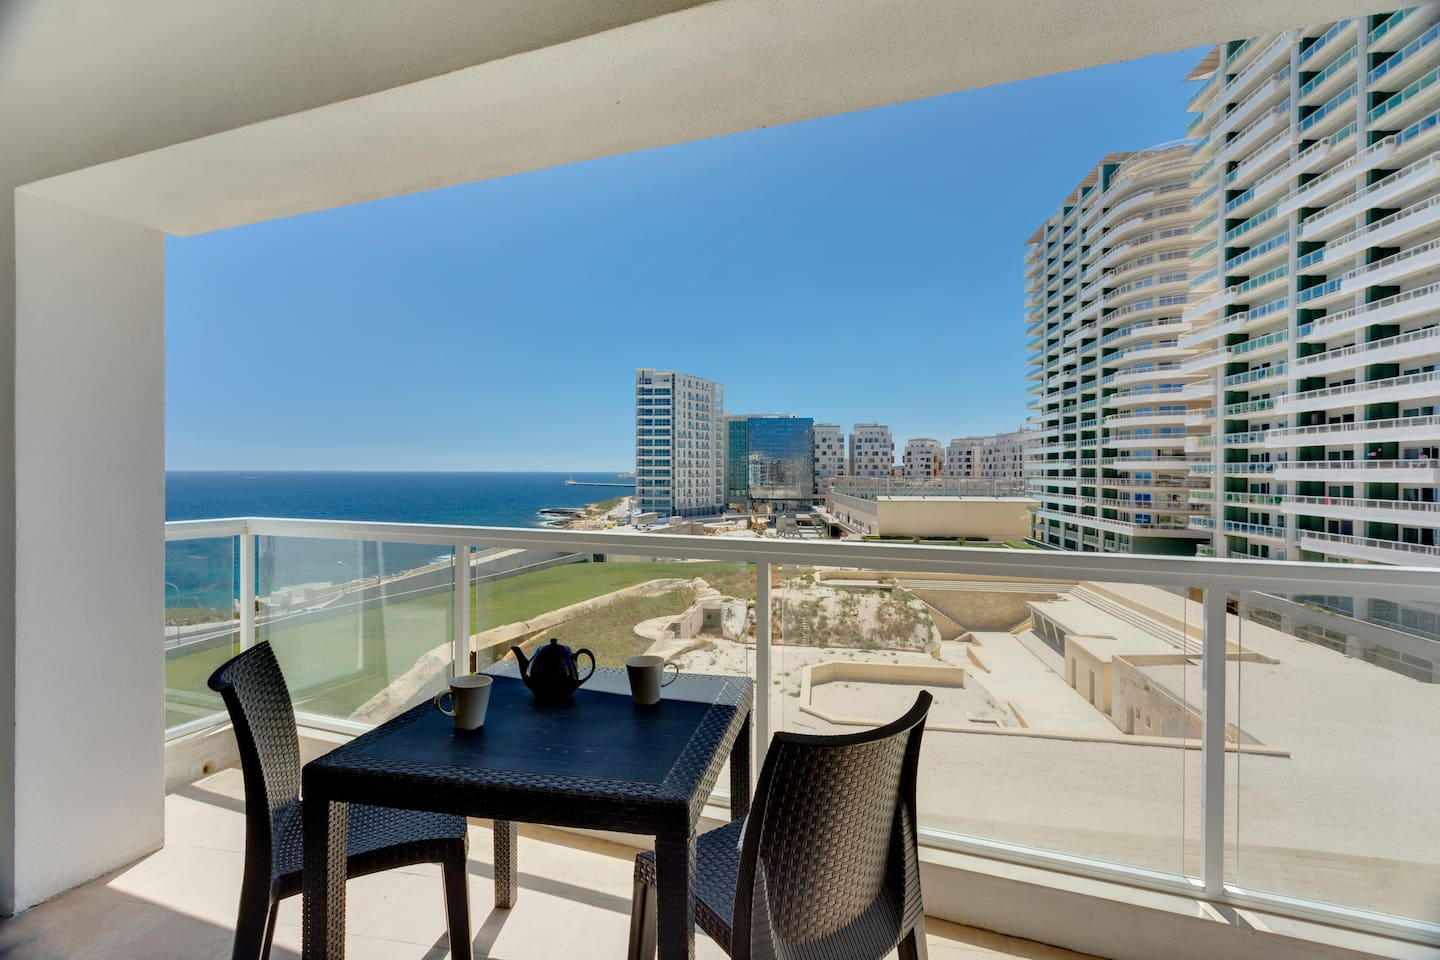 Breathtaking seaviews from the spacious terrace